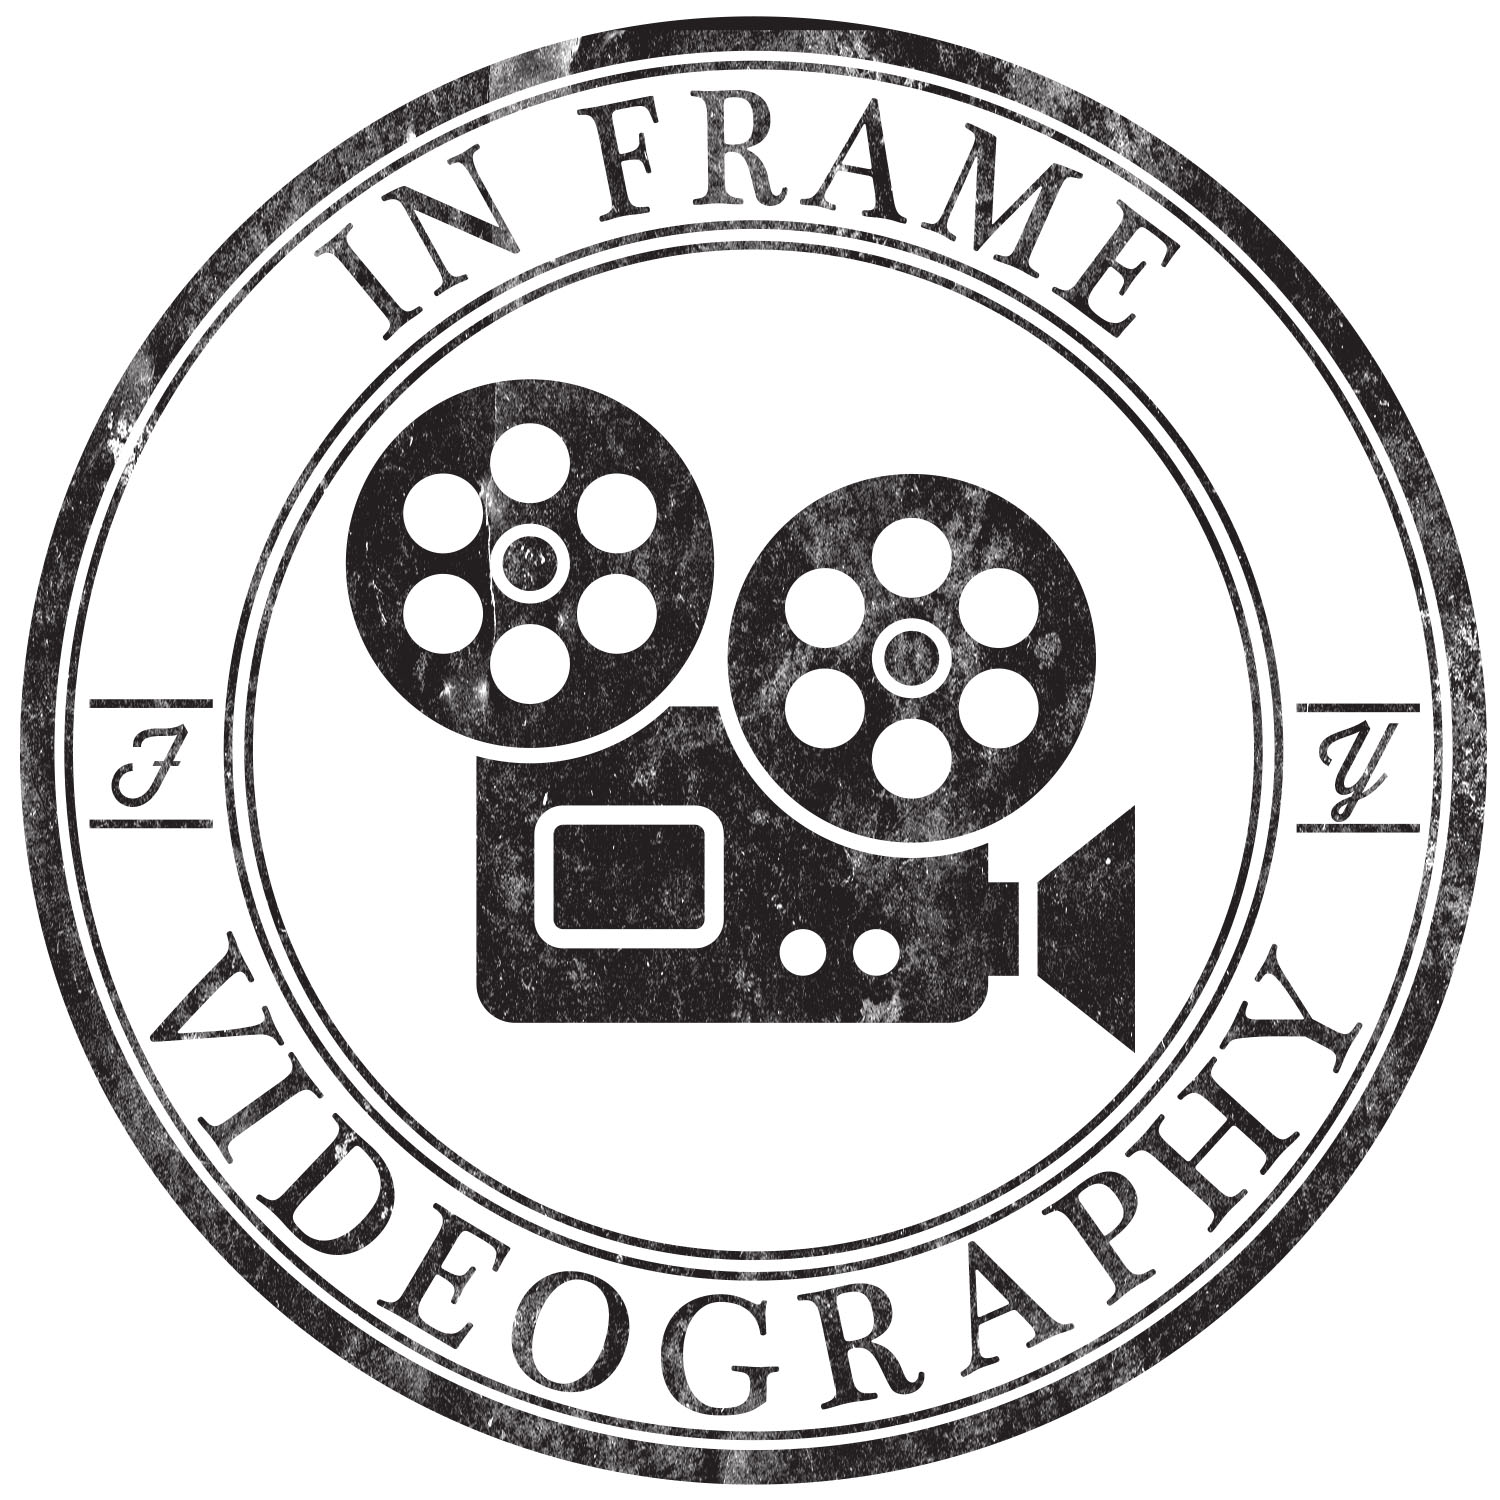 In Frame Videography